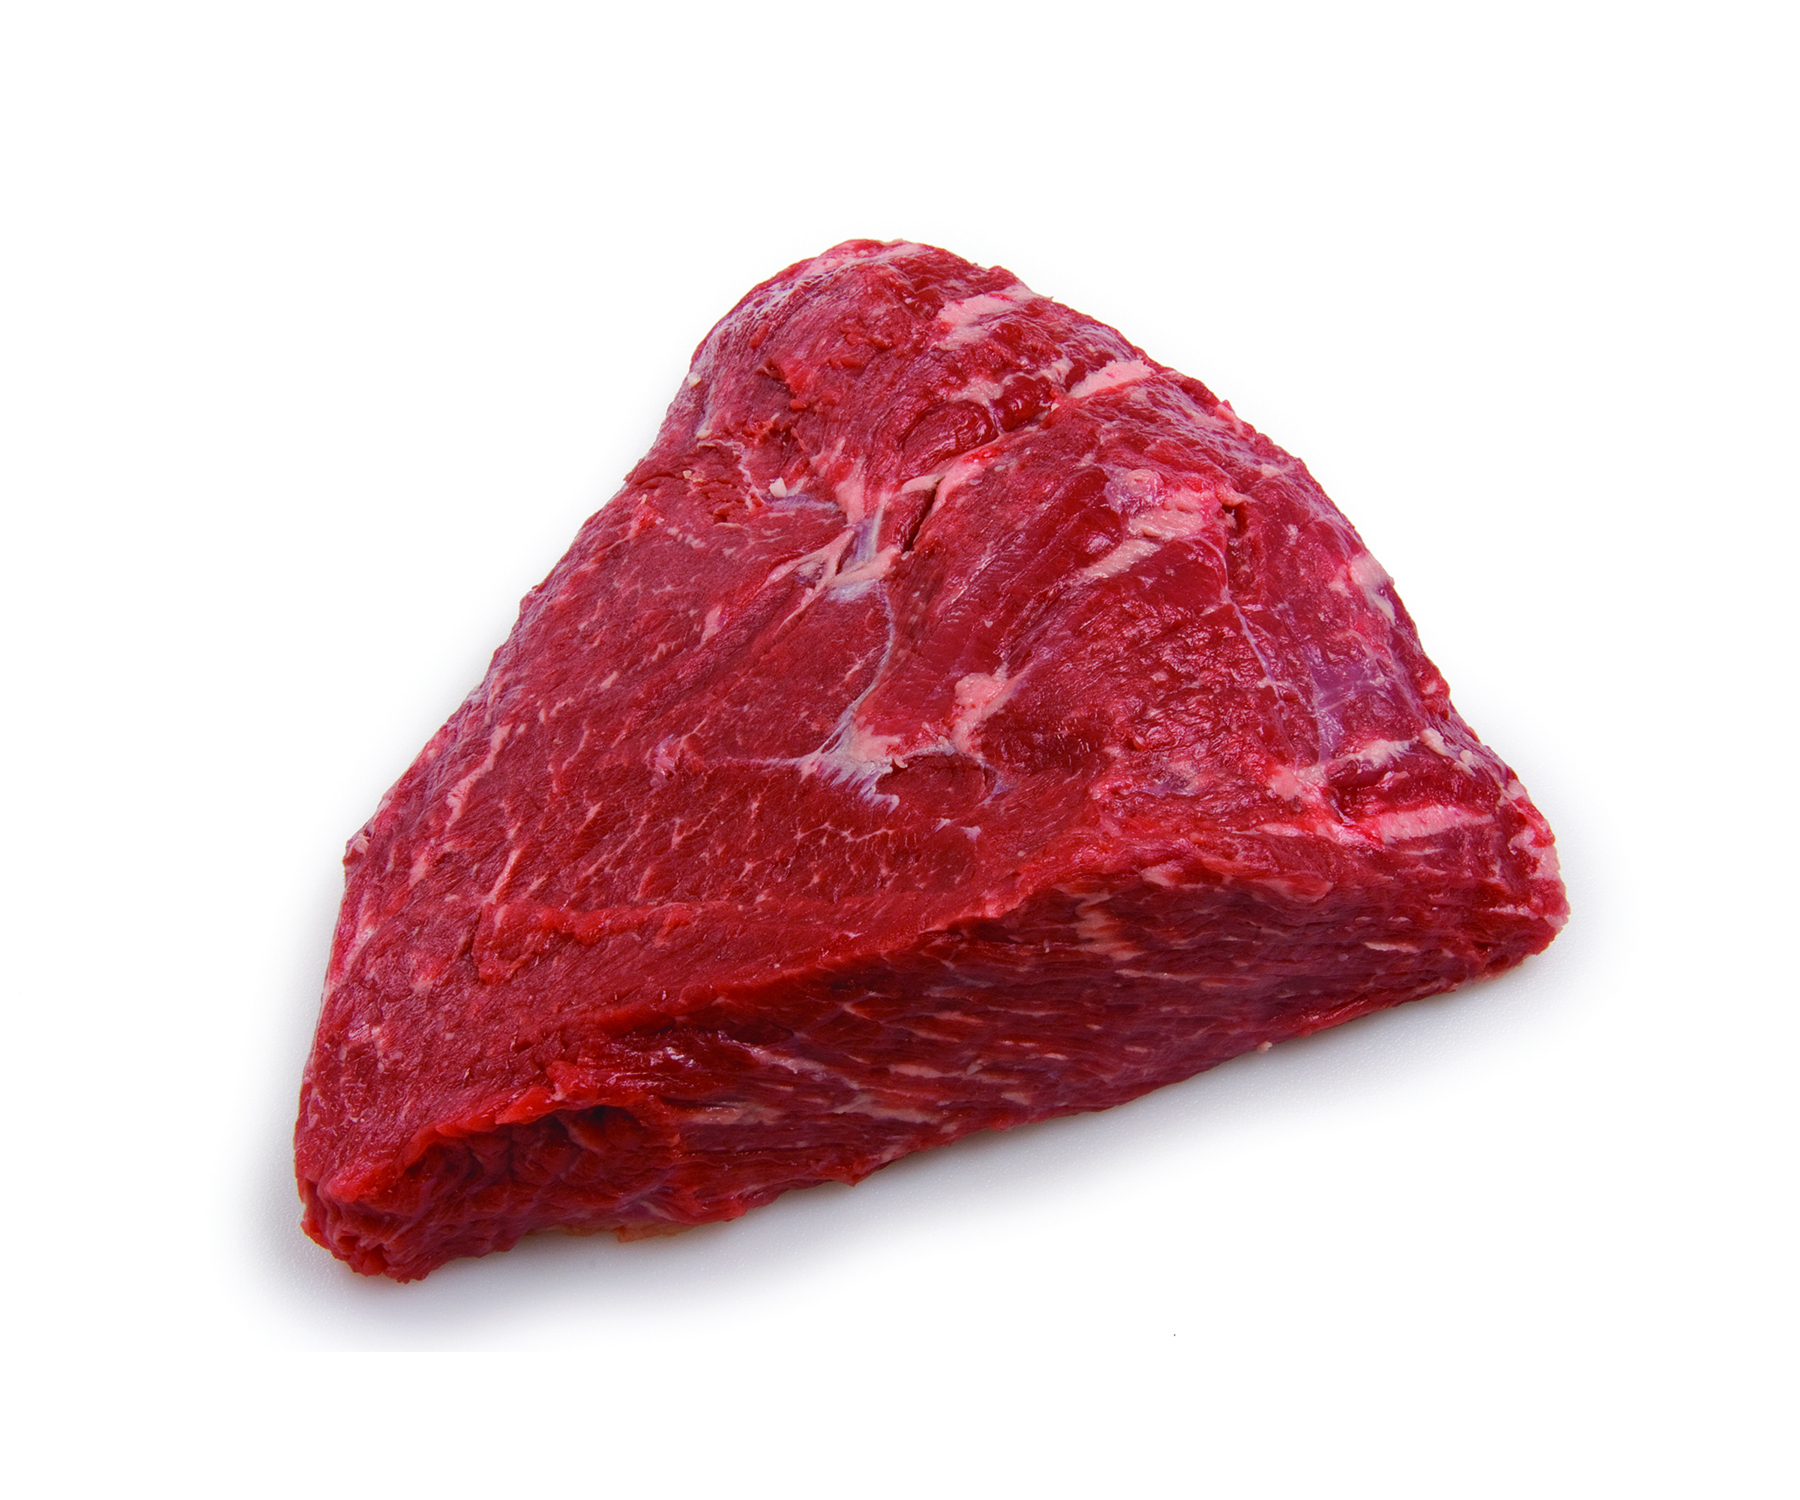 Top Sirloin Cap